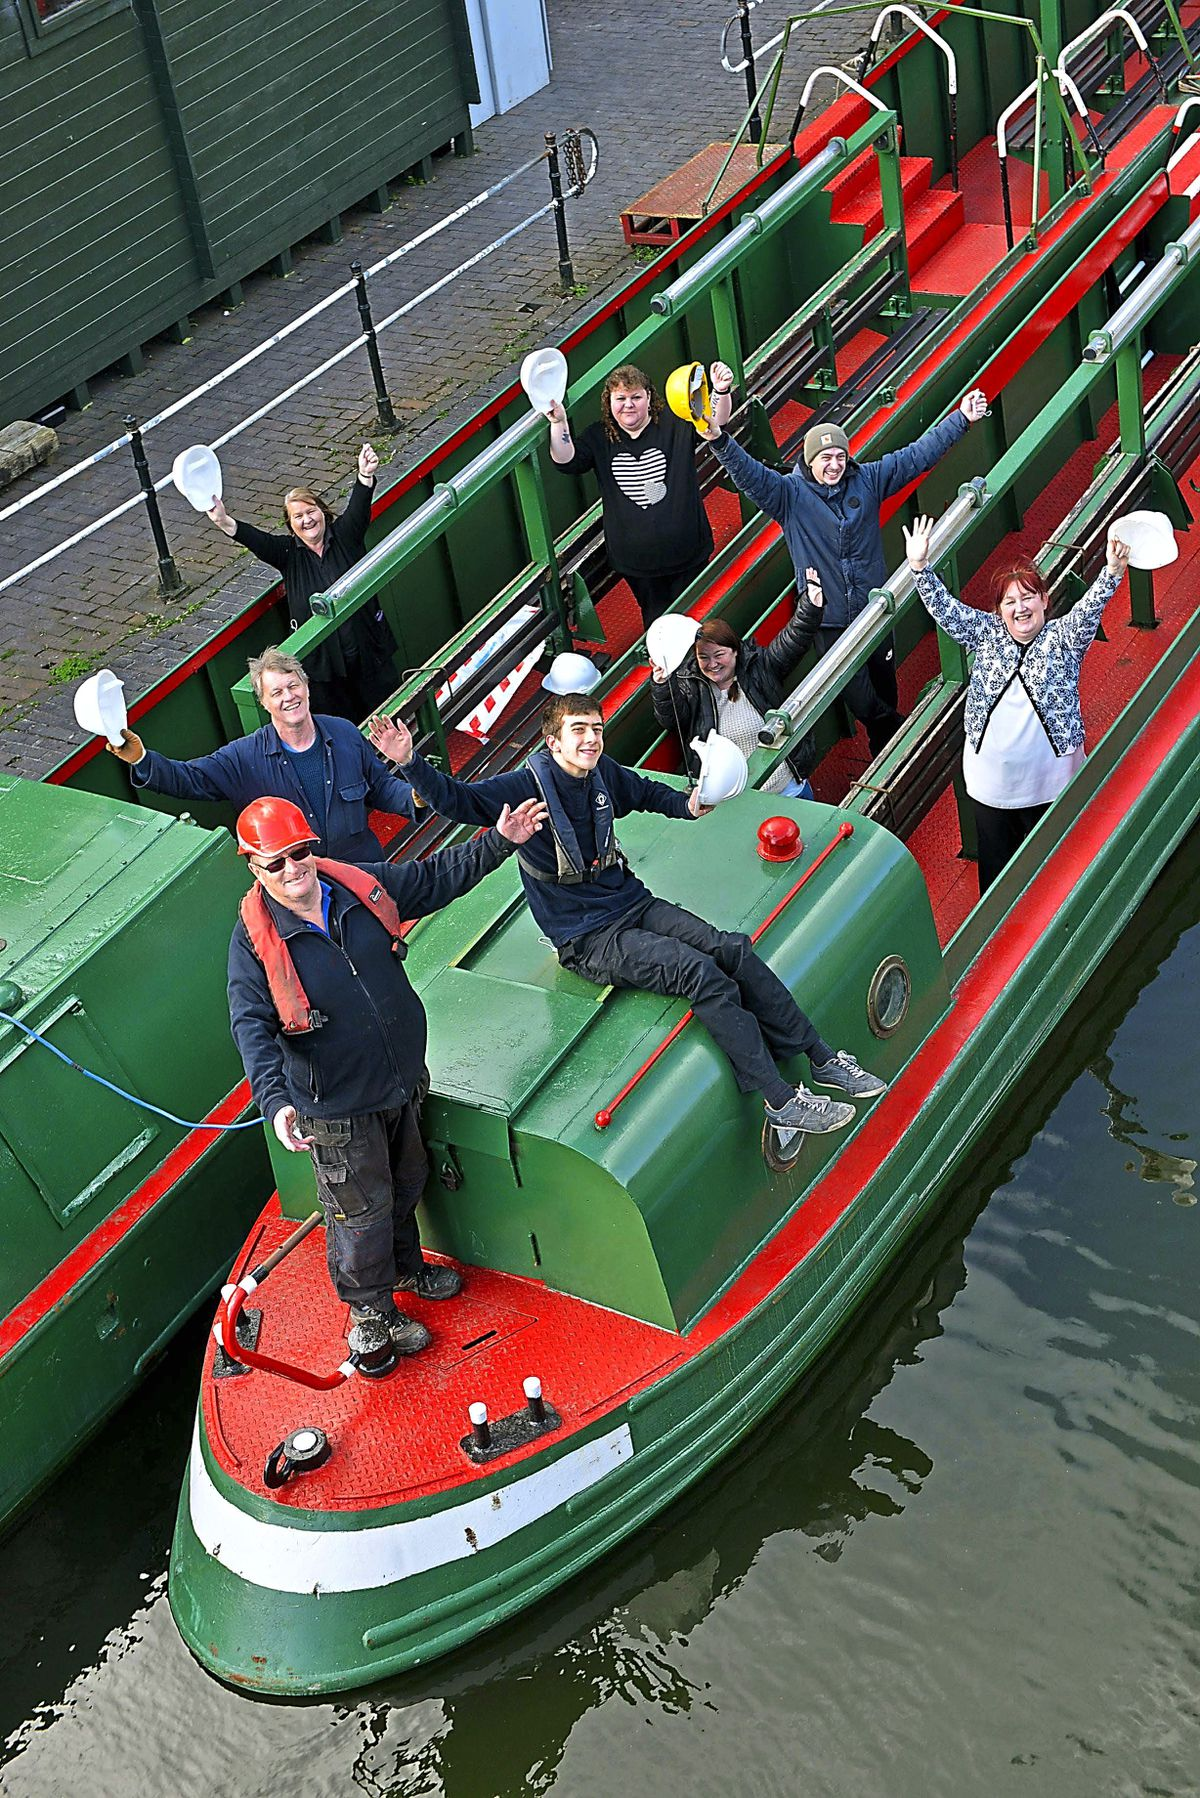 Members of the Dudley Canal and Tunnel Trust are delighted to receive a grant